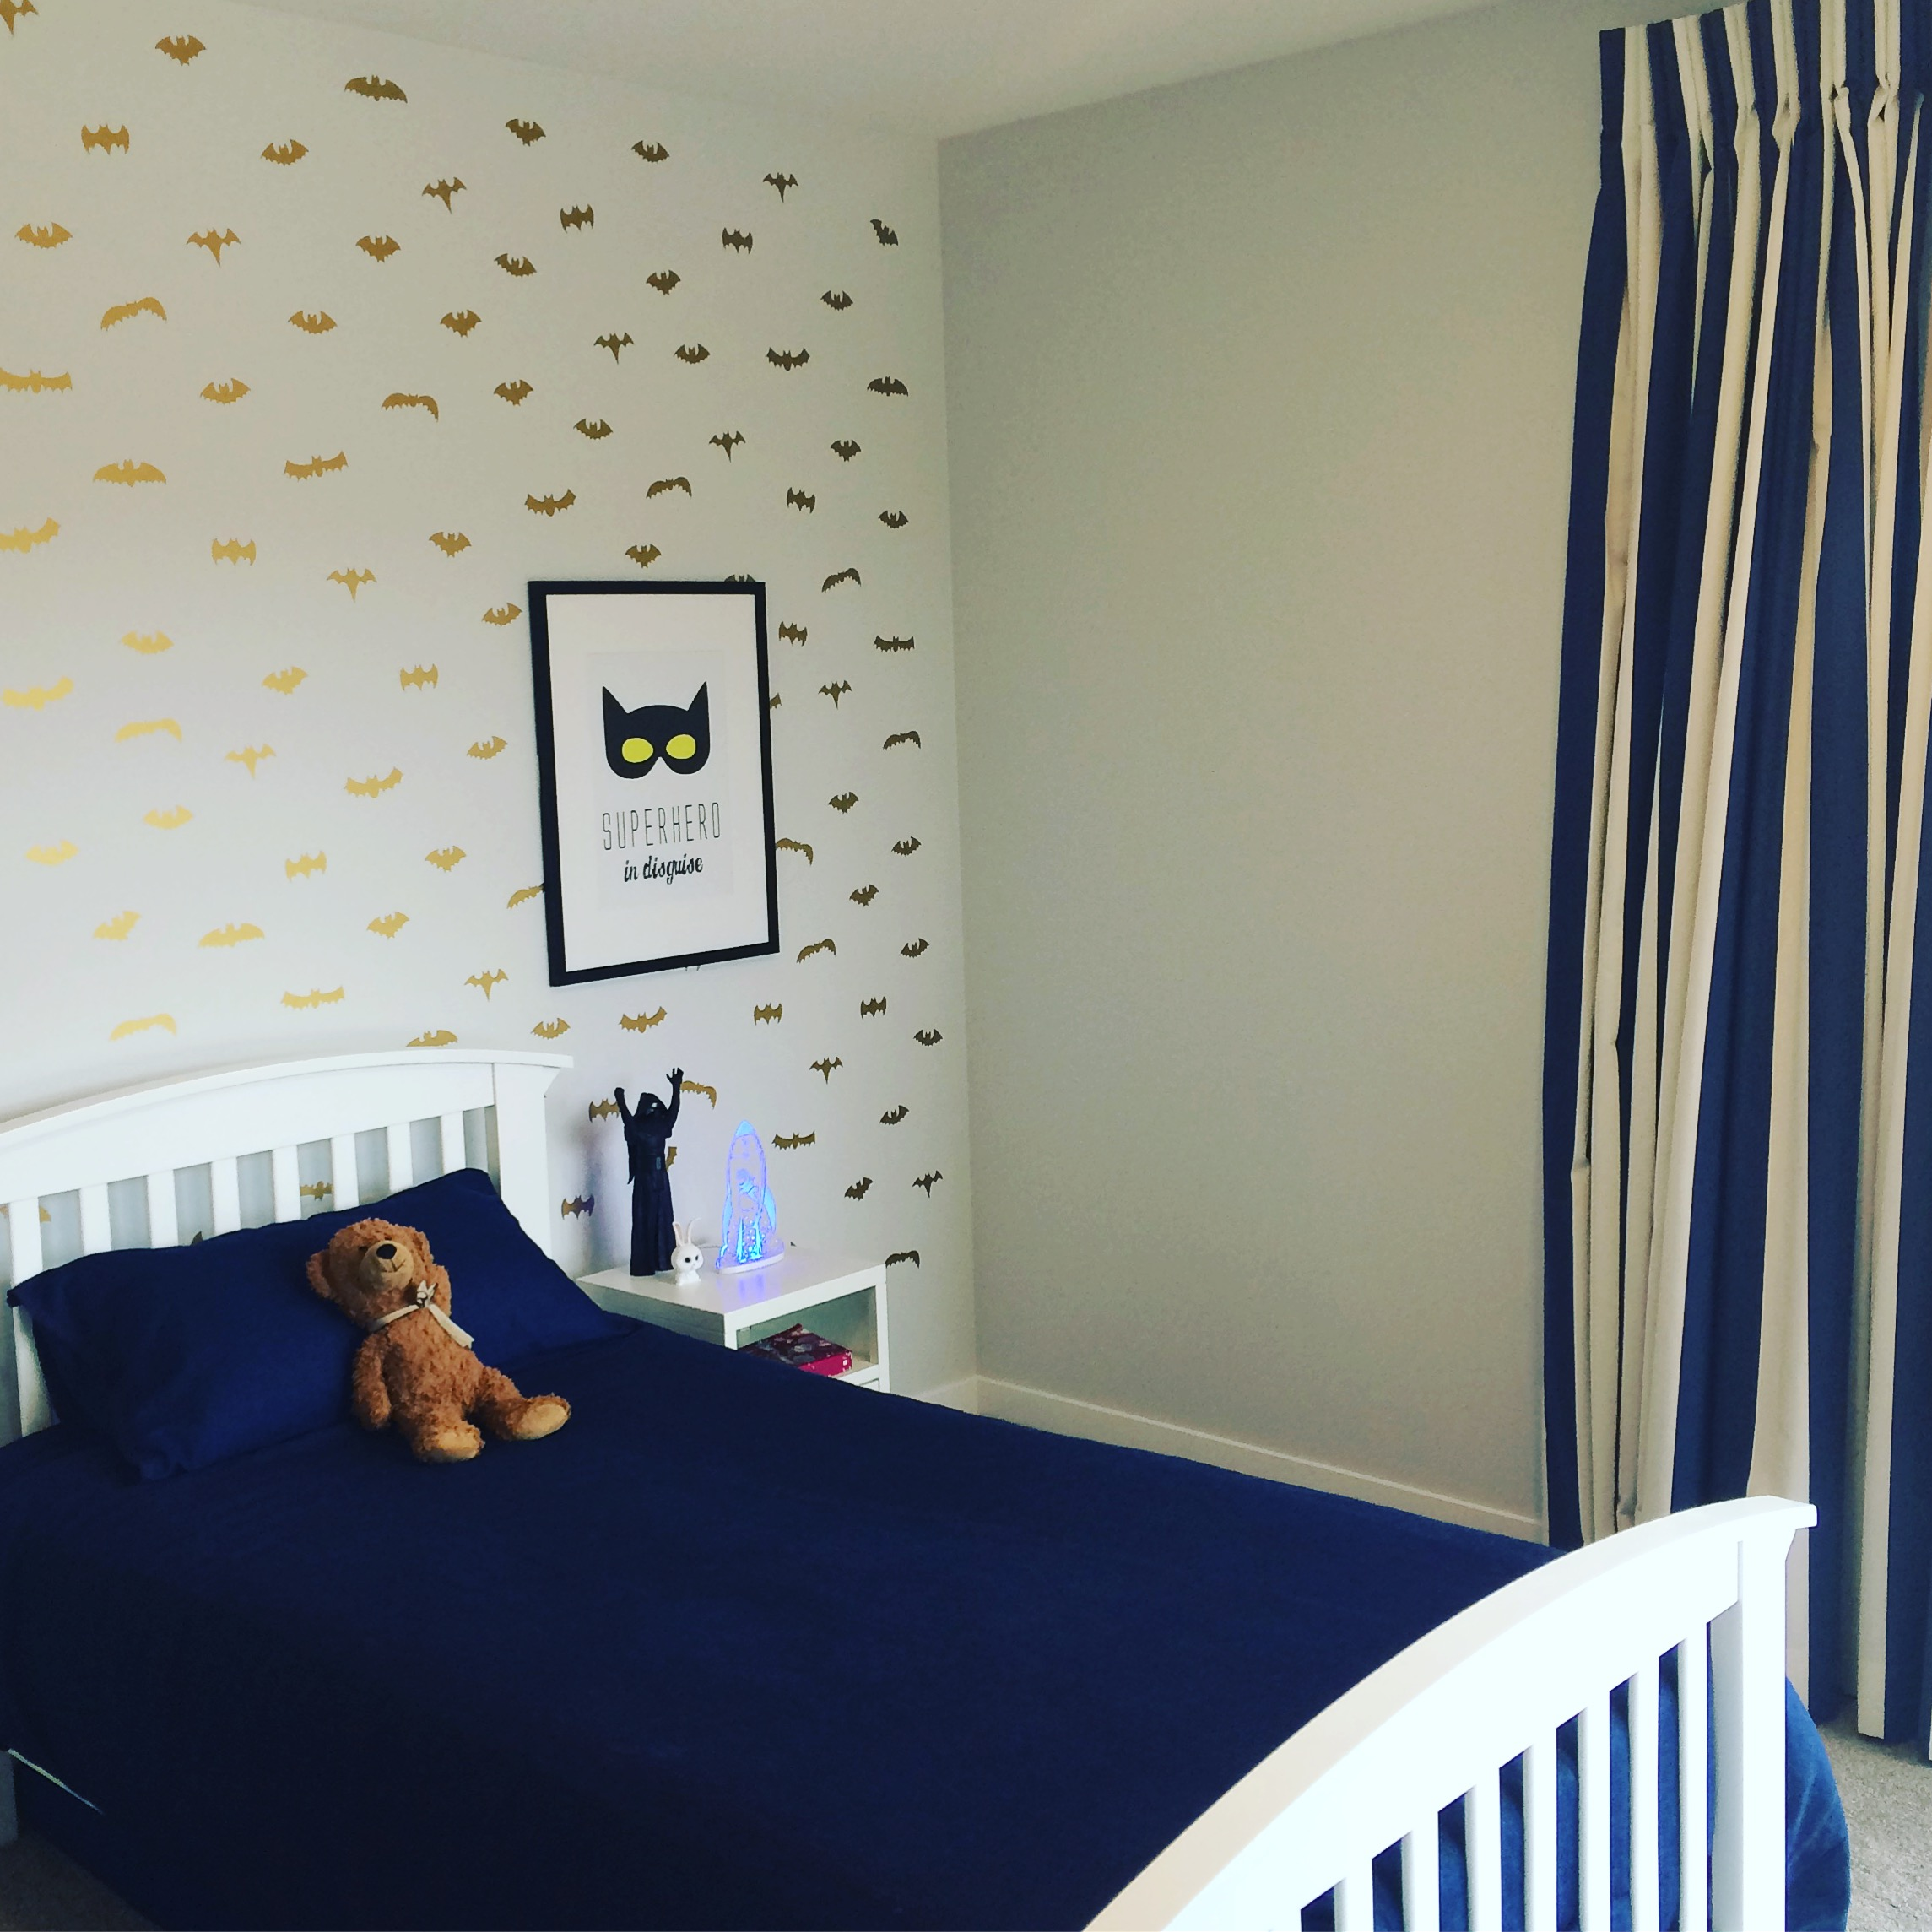 When a super hero room was requested this was my solution - gorgeous gold batman decals (which work perfectly with other gold or brass details we were doing in the home), and a super cool bat man print.  The denim duvet is going to get better and better with age just like your favourite pair of jeans along with the denim blue striped curtains.  All in a neutral room with pale grey walls and pale grey (bullet proof solution dyed nylon) carpet.